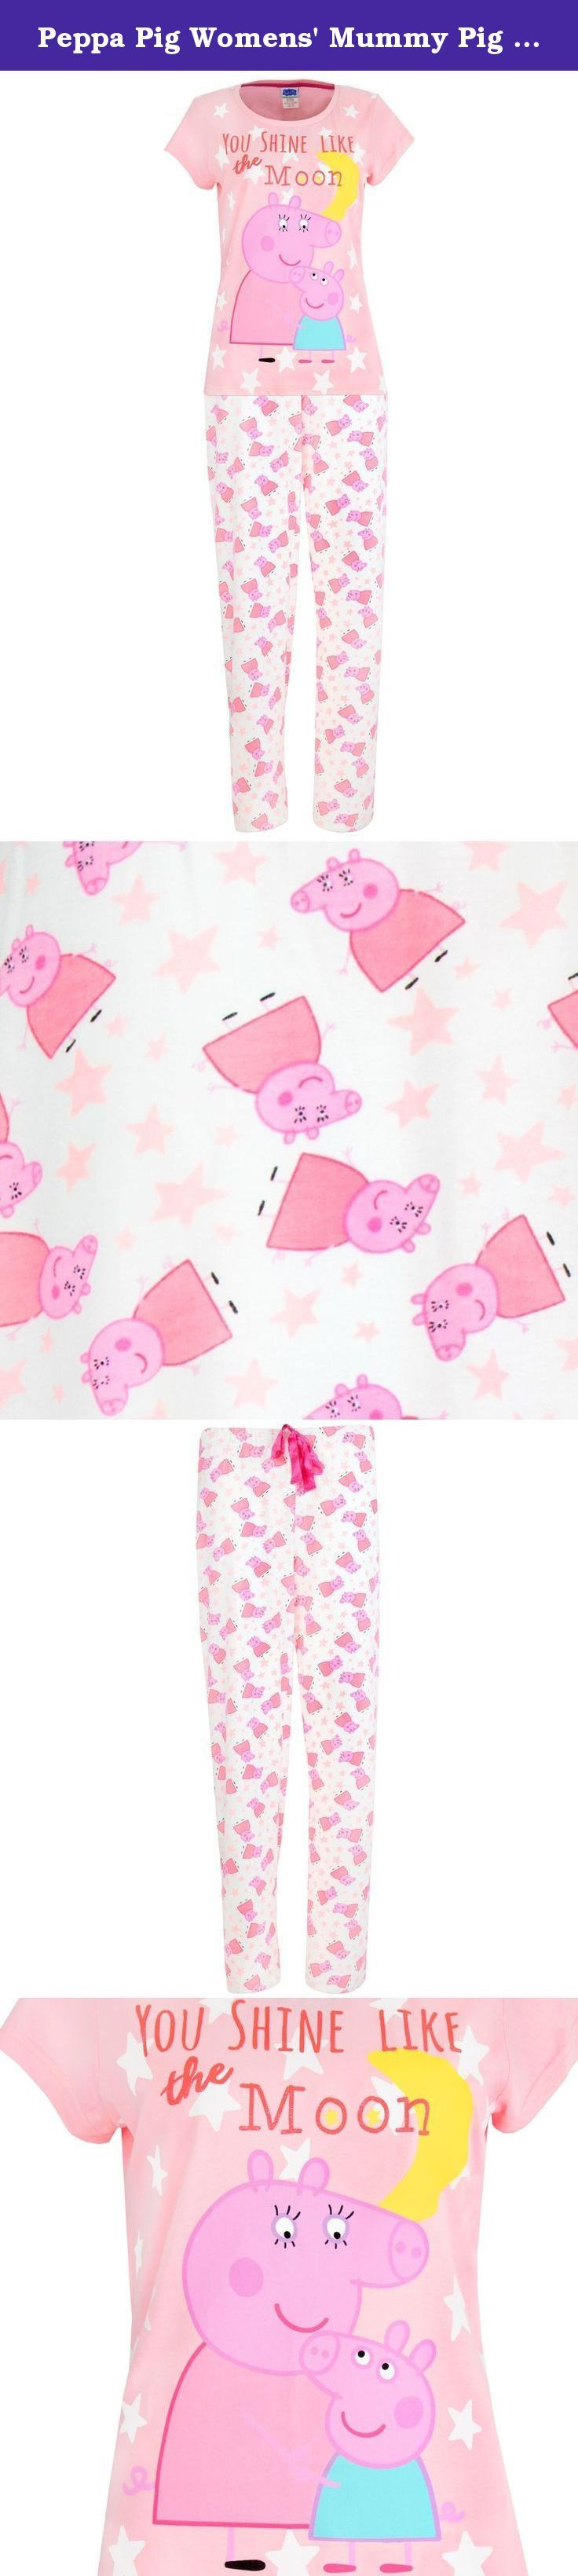 Peppa Pig Womens' Mummy Pig Pajamas - S. Ladies Peppa Pig pajamas. Take some of Peppa's iconic style home with these adorable Mummy Pig PJs! This fun pajama set comes with a short sleeved top complete with a large print of Peppa and Mummy Pig, surrounded by the moon and stars and a glittery slogan 'You shine like the moon'. The matching bottoms have an all-over pattern of Mummy Pug and stars and come with an elasticated waist, making them ideal to relax in and watch everyone's favourite...